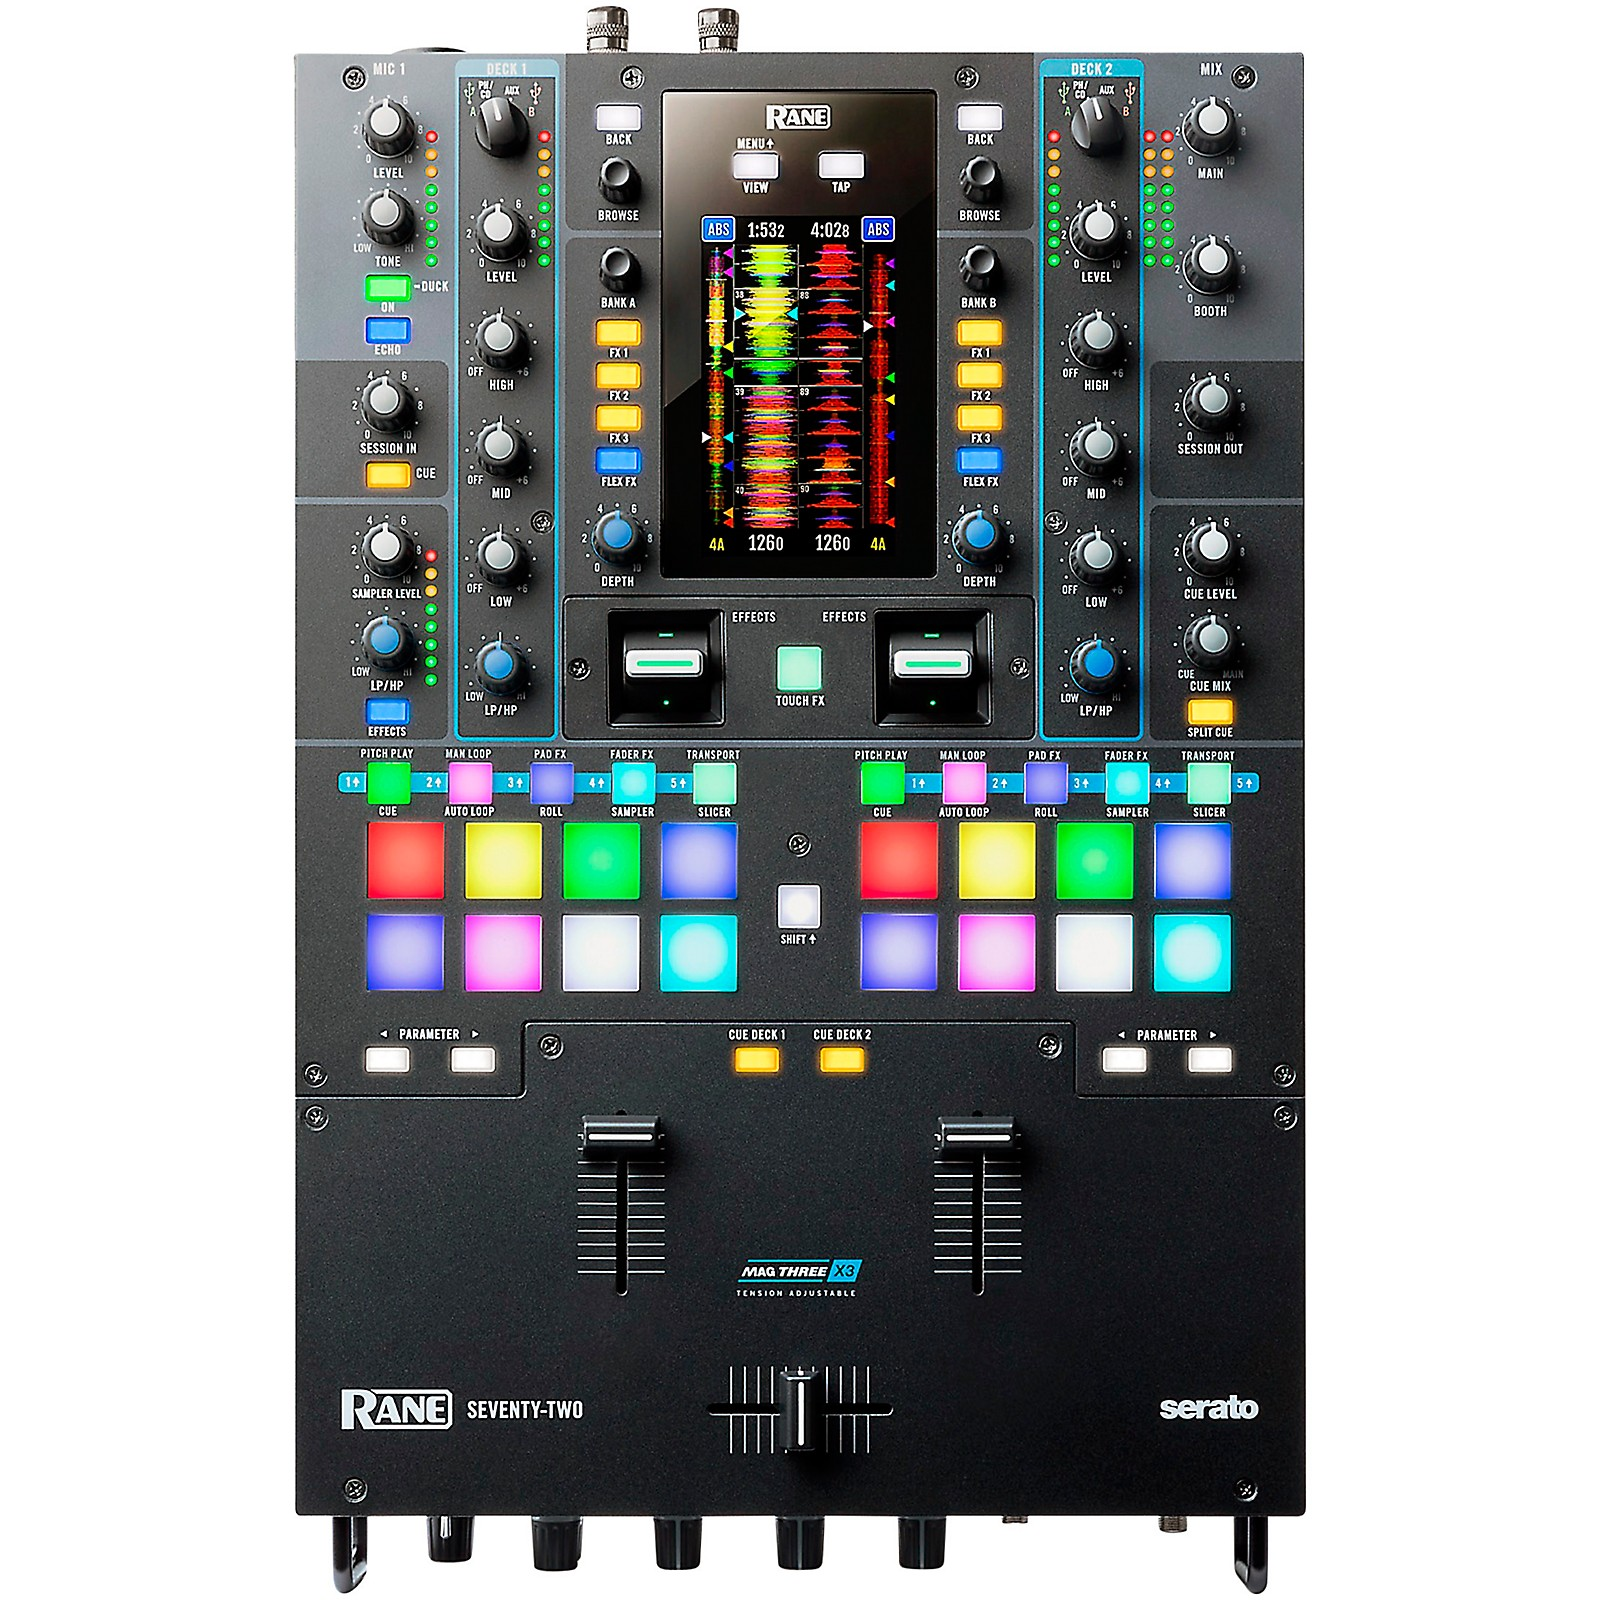 RANE DJ SEVENTY-TWO Battle-Ready 2-channel DJ Mixer with Touchscreen and Serato DJ